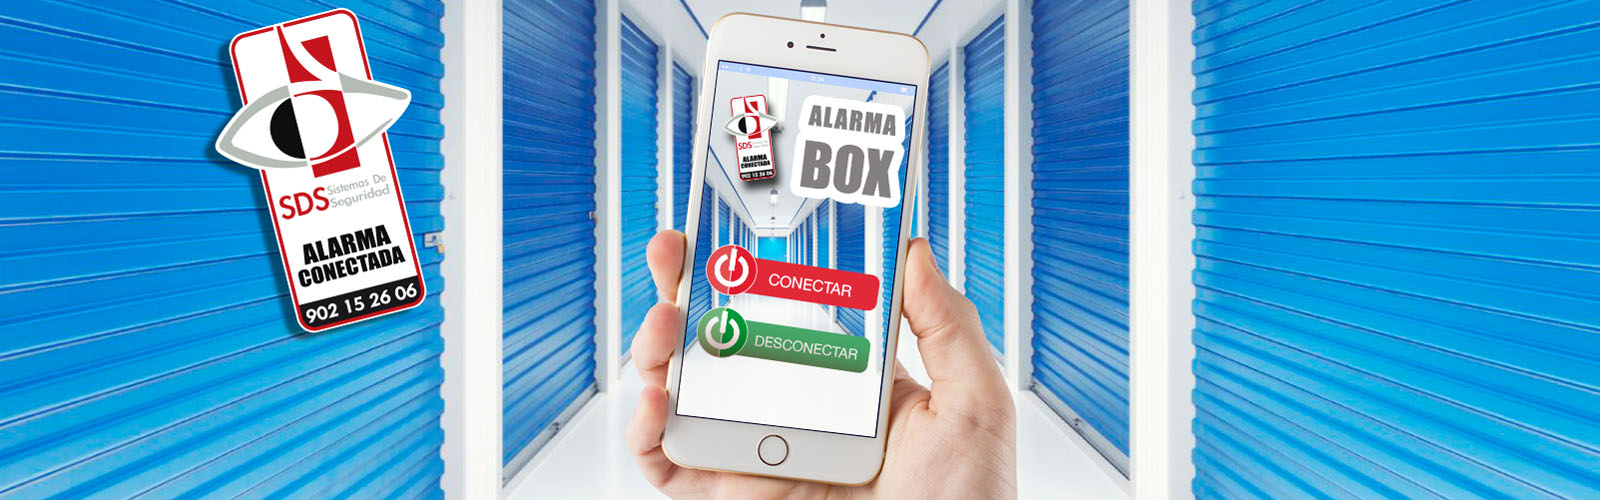 Sistema de Alarma Self Storage